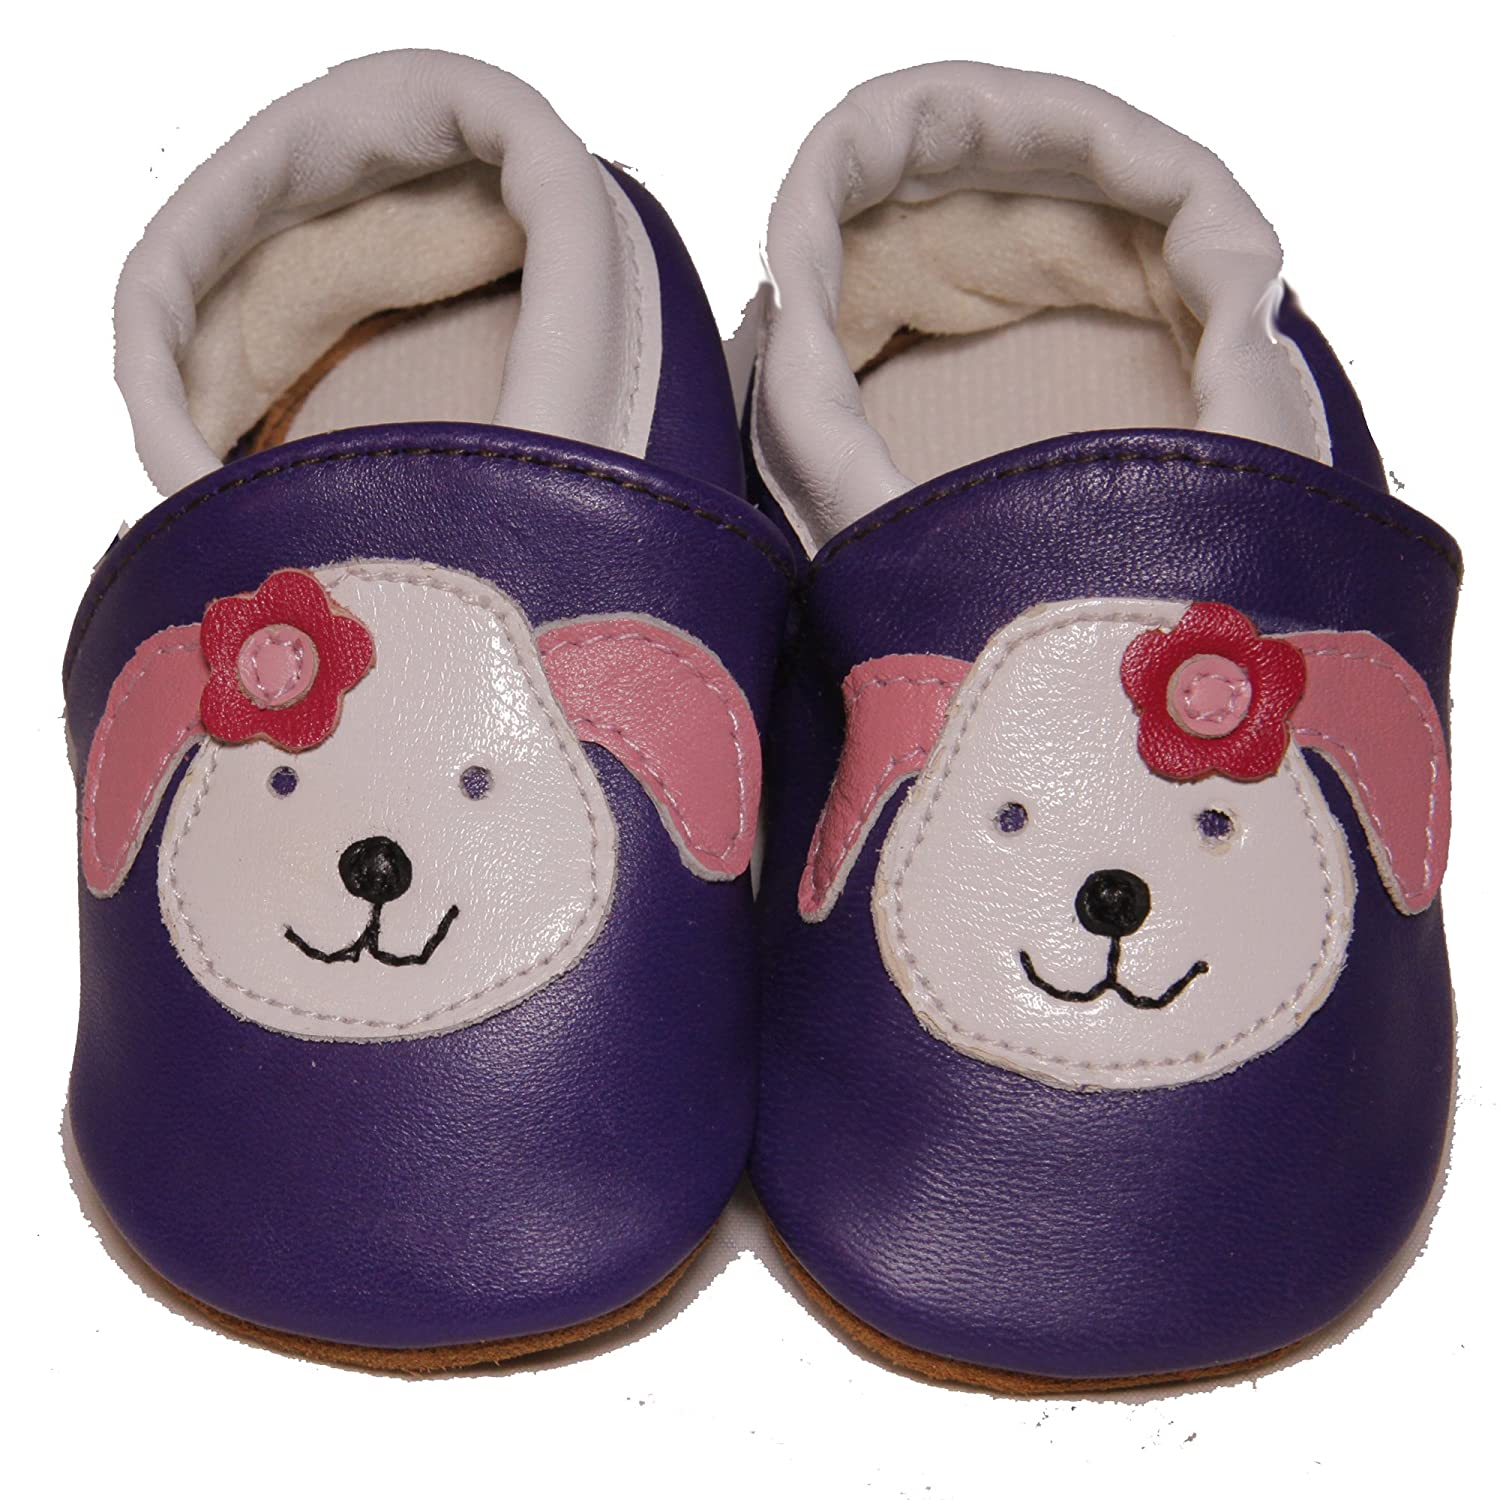 CONDA Baby Handmade Animated Baby Moccasins Leather Soft Sole Slip on Baby Shoes for Girls 100/%